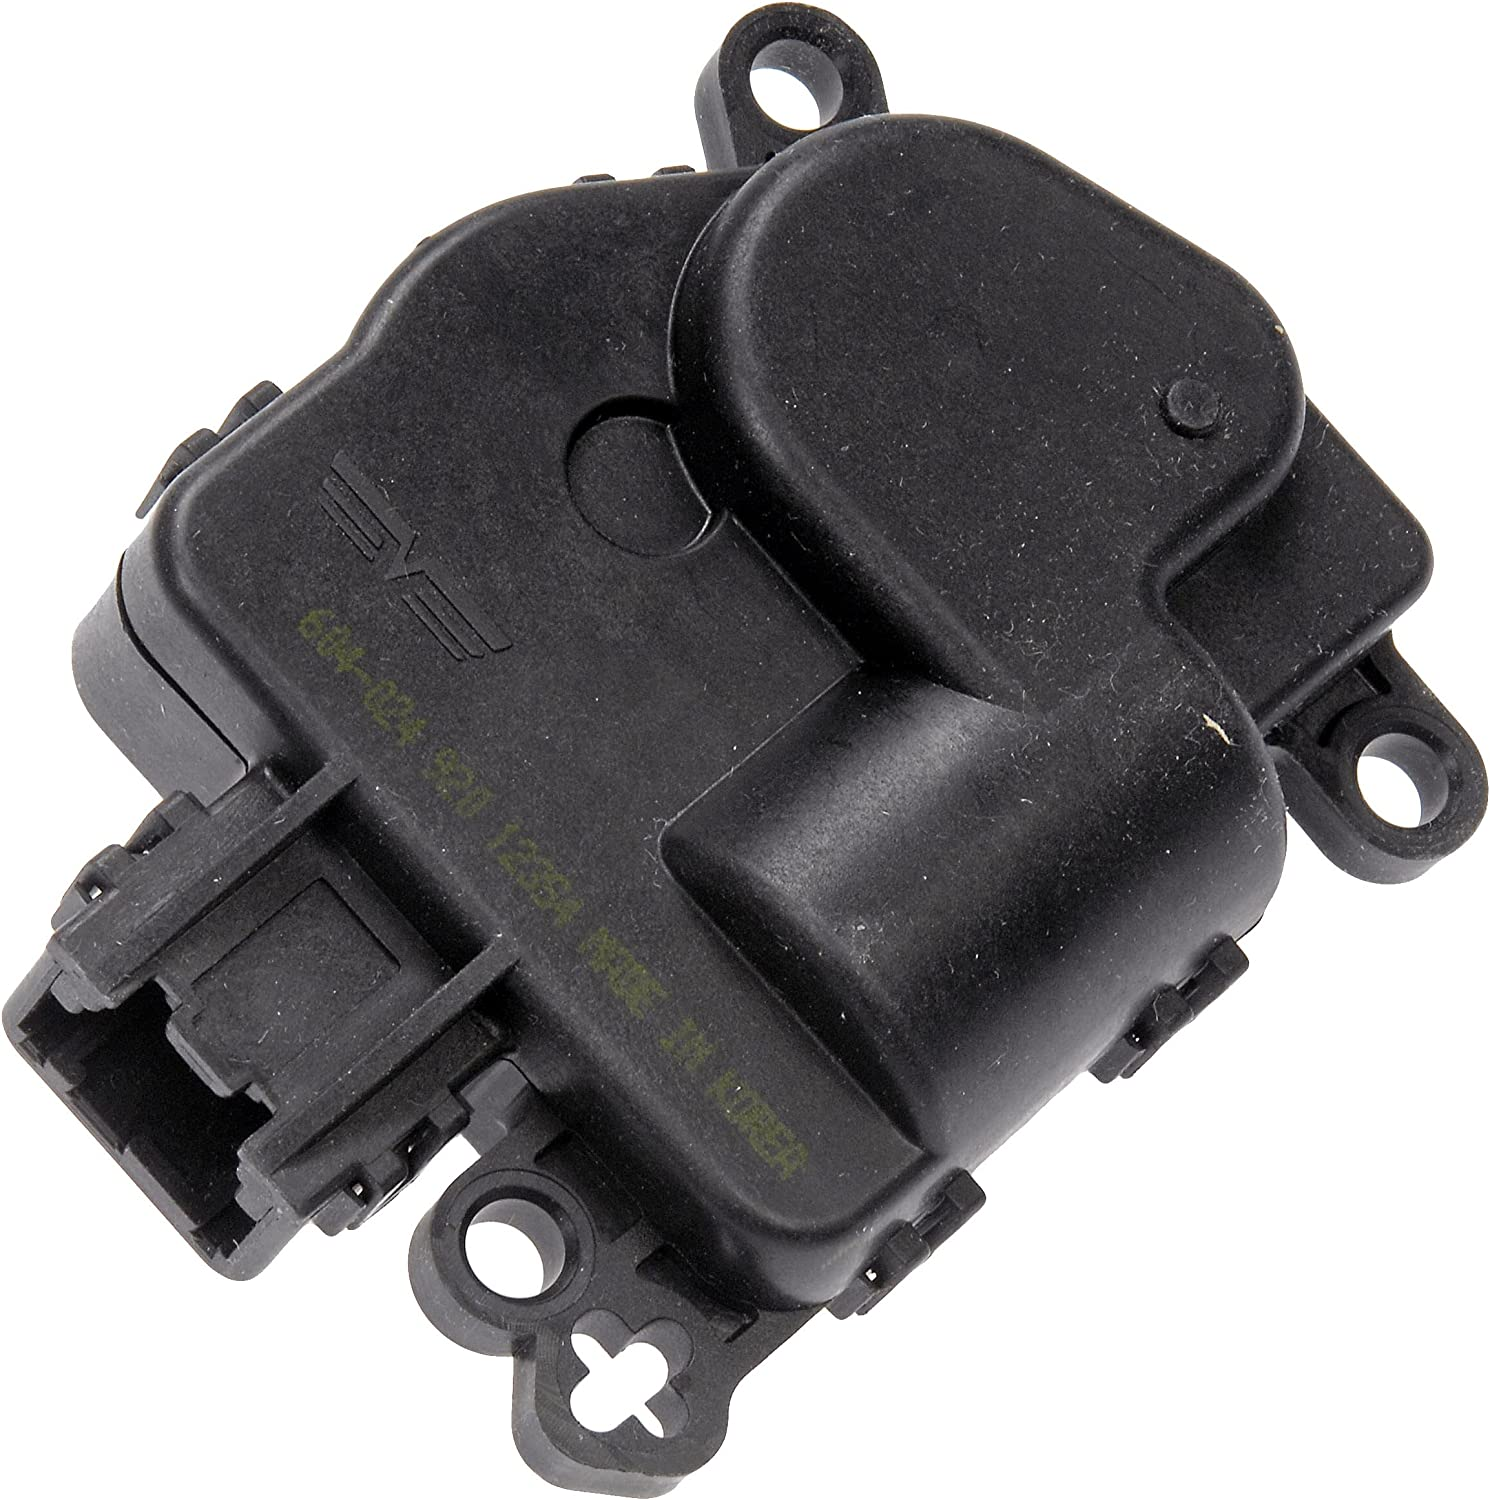 Dorman 604-024 HVAC Blend Door Actuator for Select Models